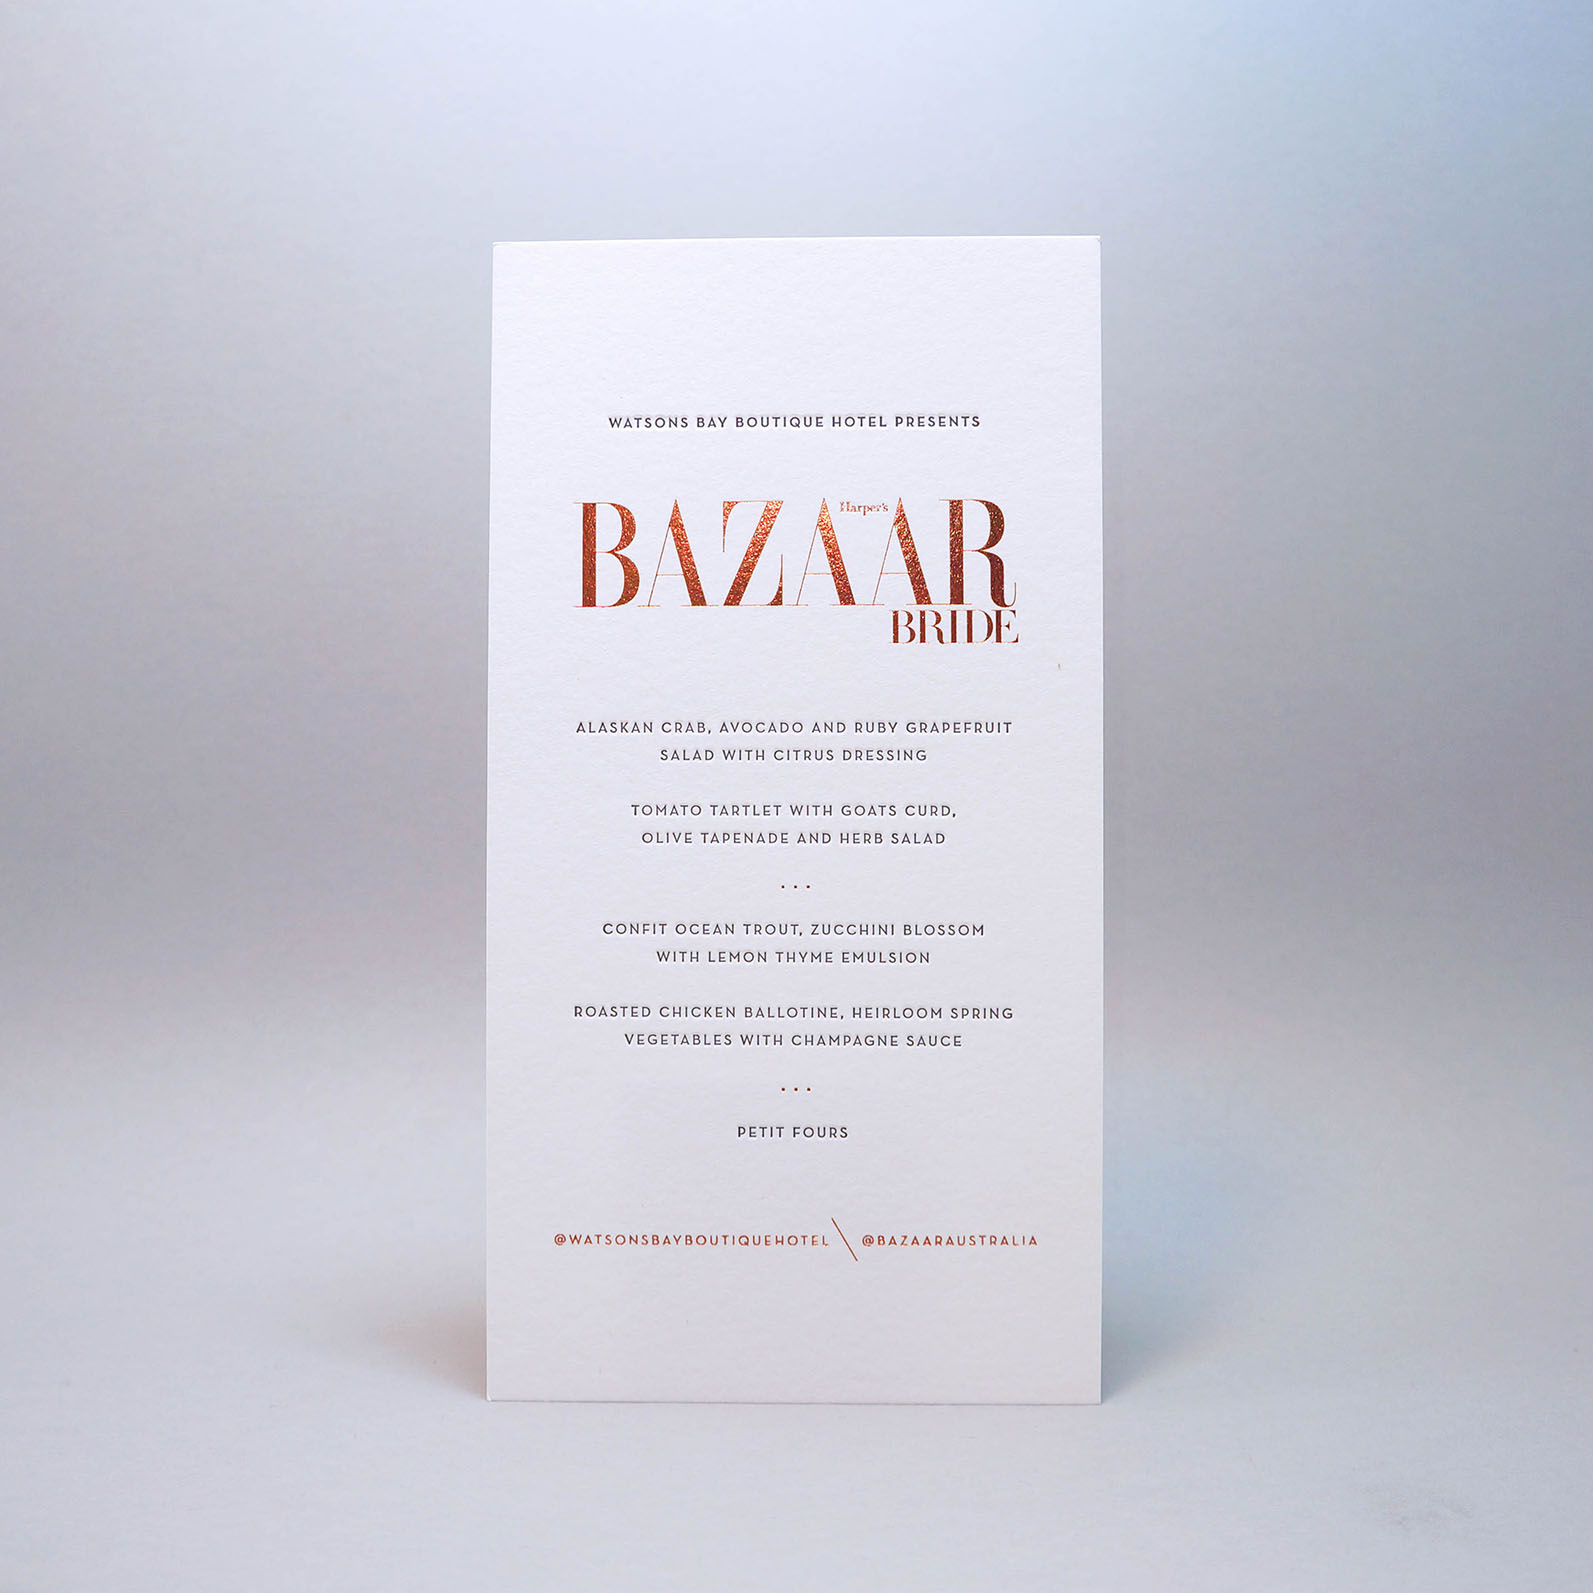 Harpers-bazaar-bride-invitation-copper-foil